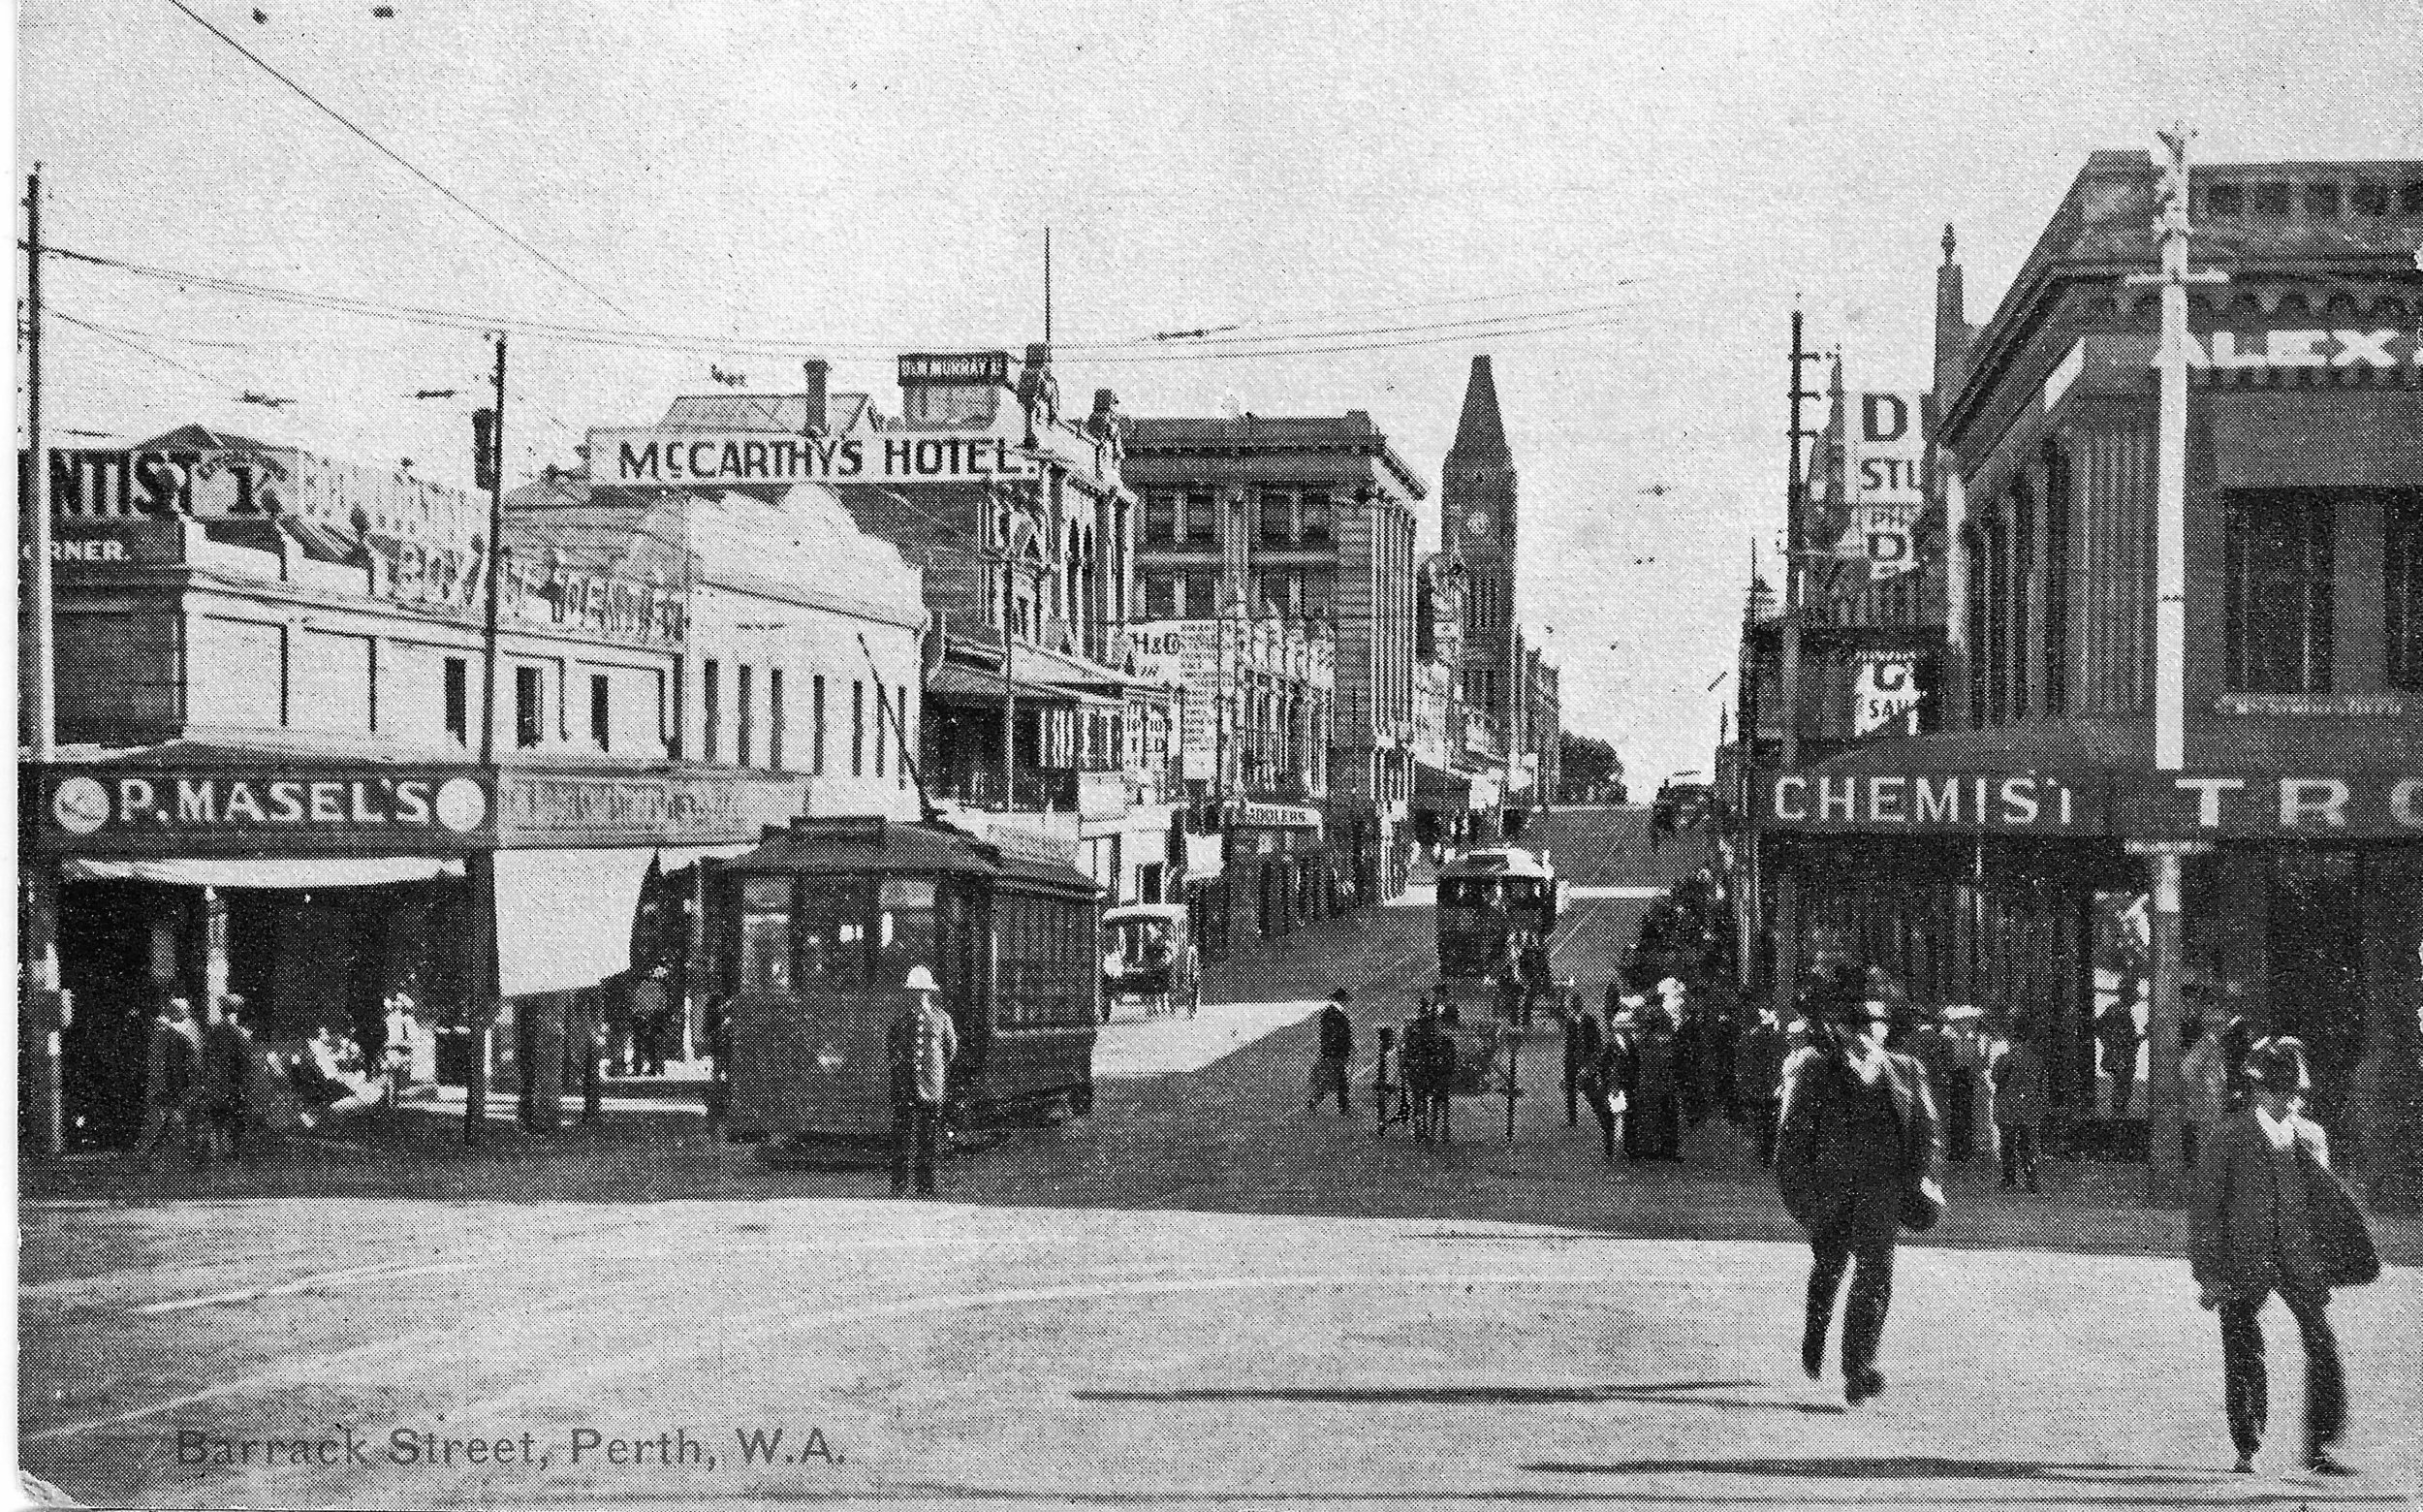 The Museum Of Perth Calls Barrack Street Home, And Although Nowadays The  Street Feels Like A Forgotten Part Of The City, It Has A Rich History And  Played An